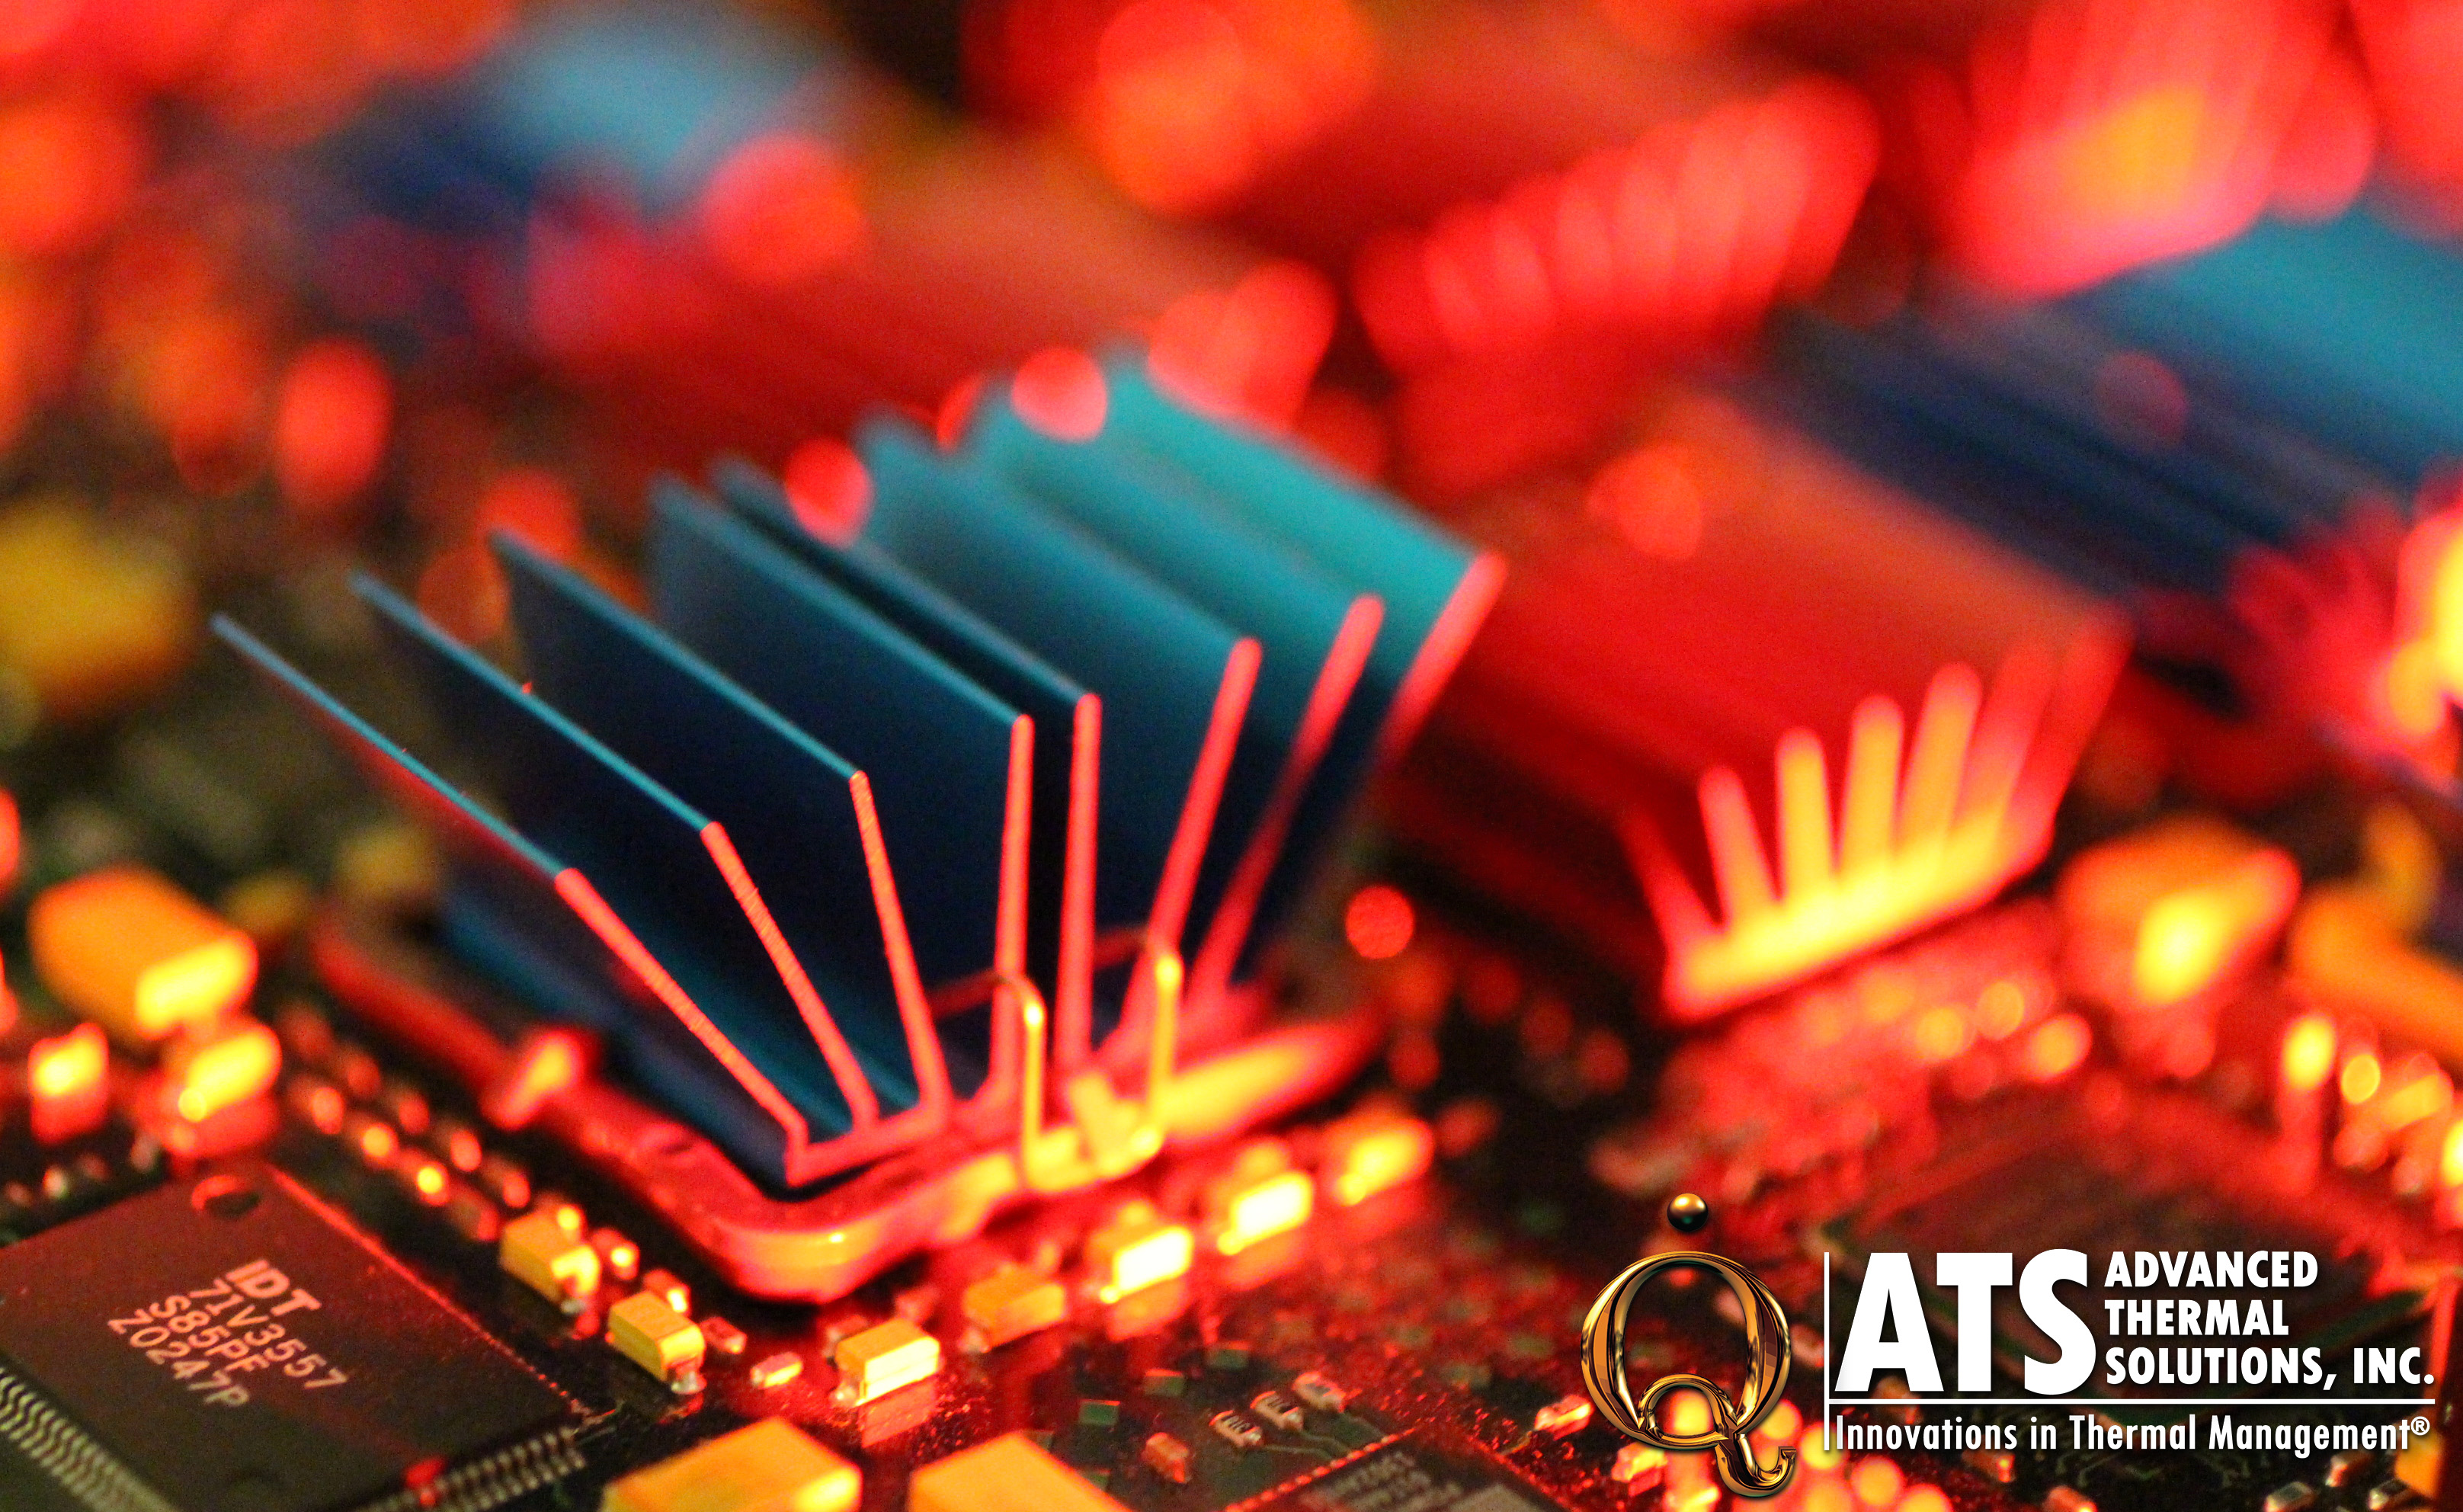 How Do Heat Sink Materials Impact Performance